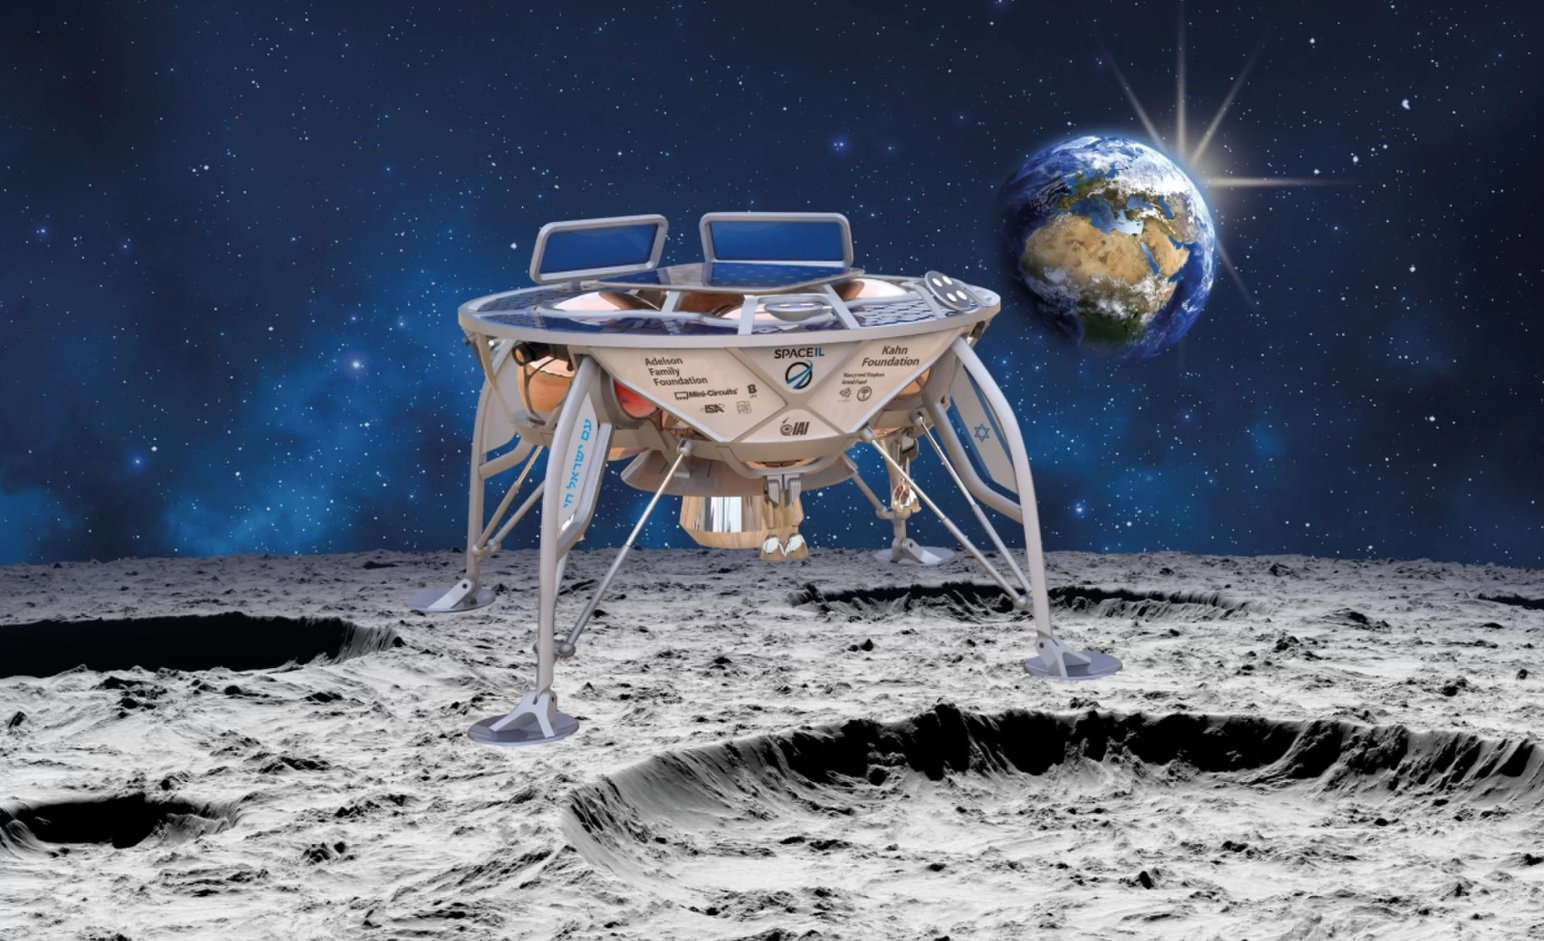 Before the end of this year, Israel wants to send to the moon lander